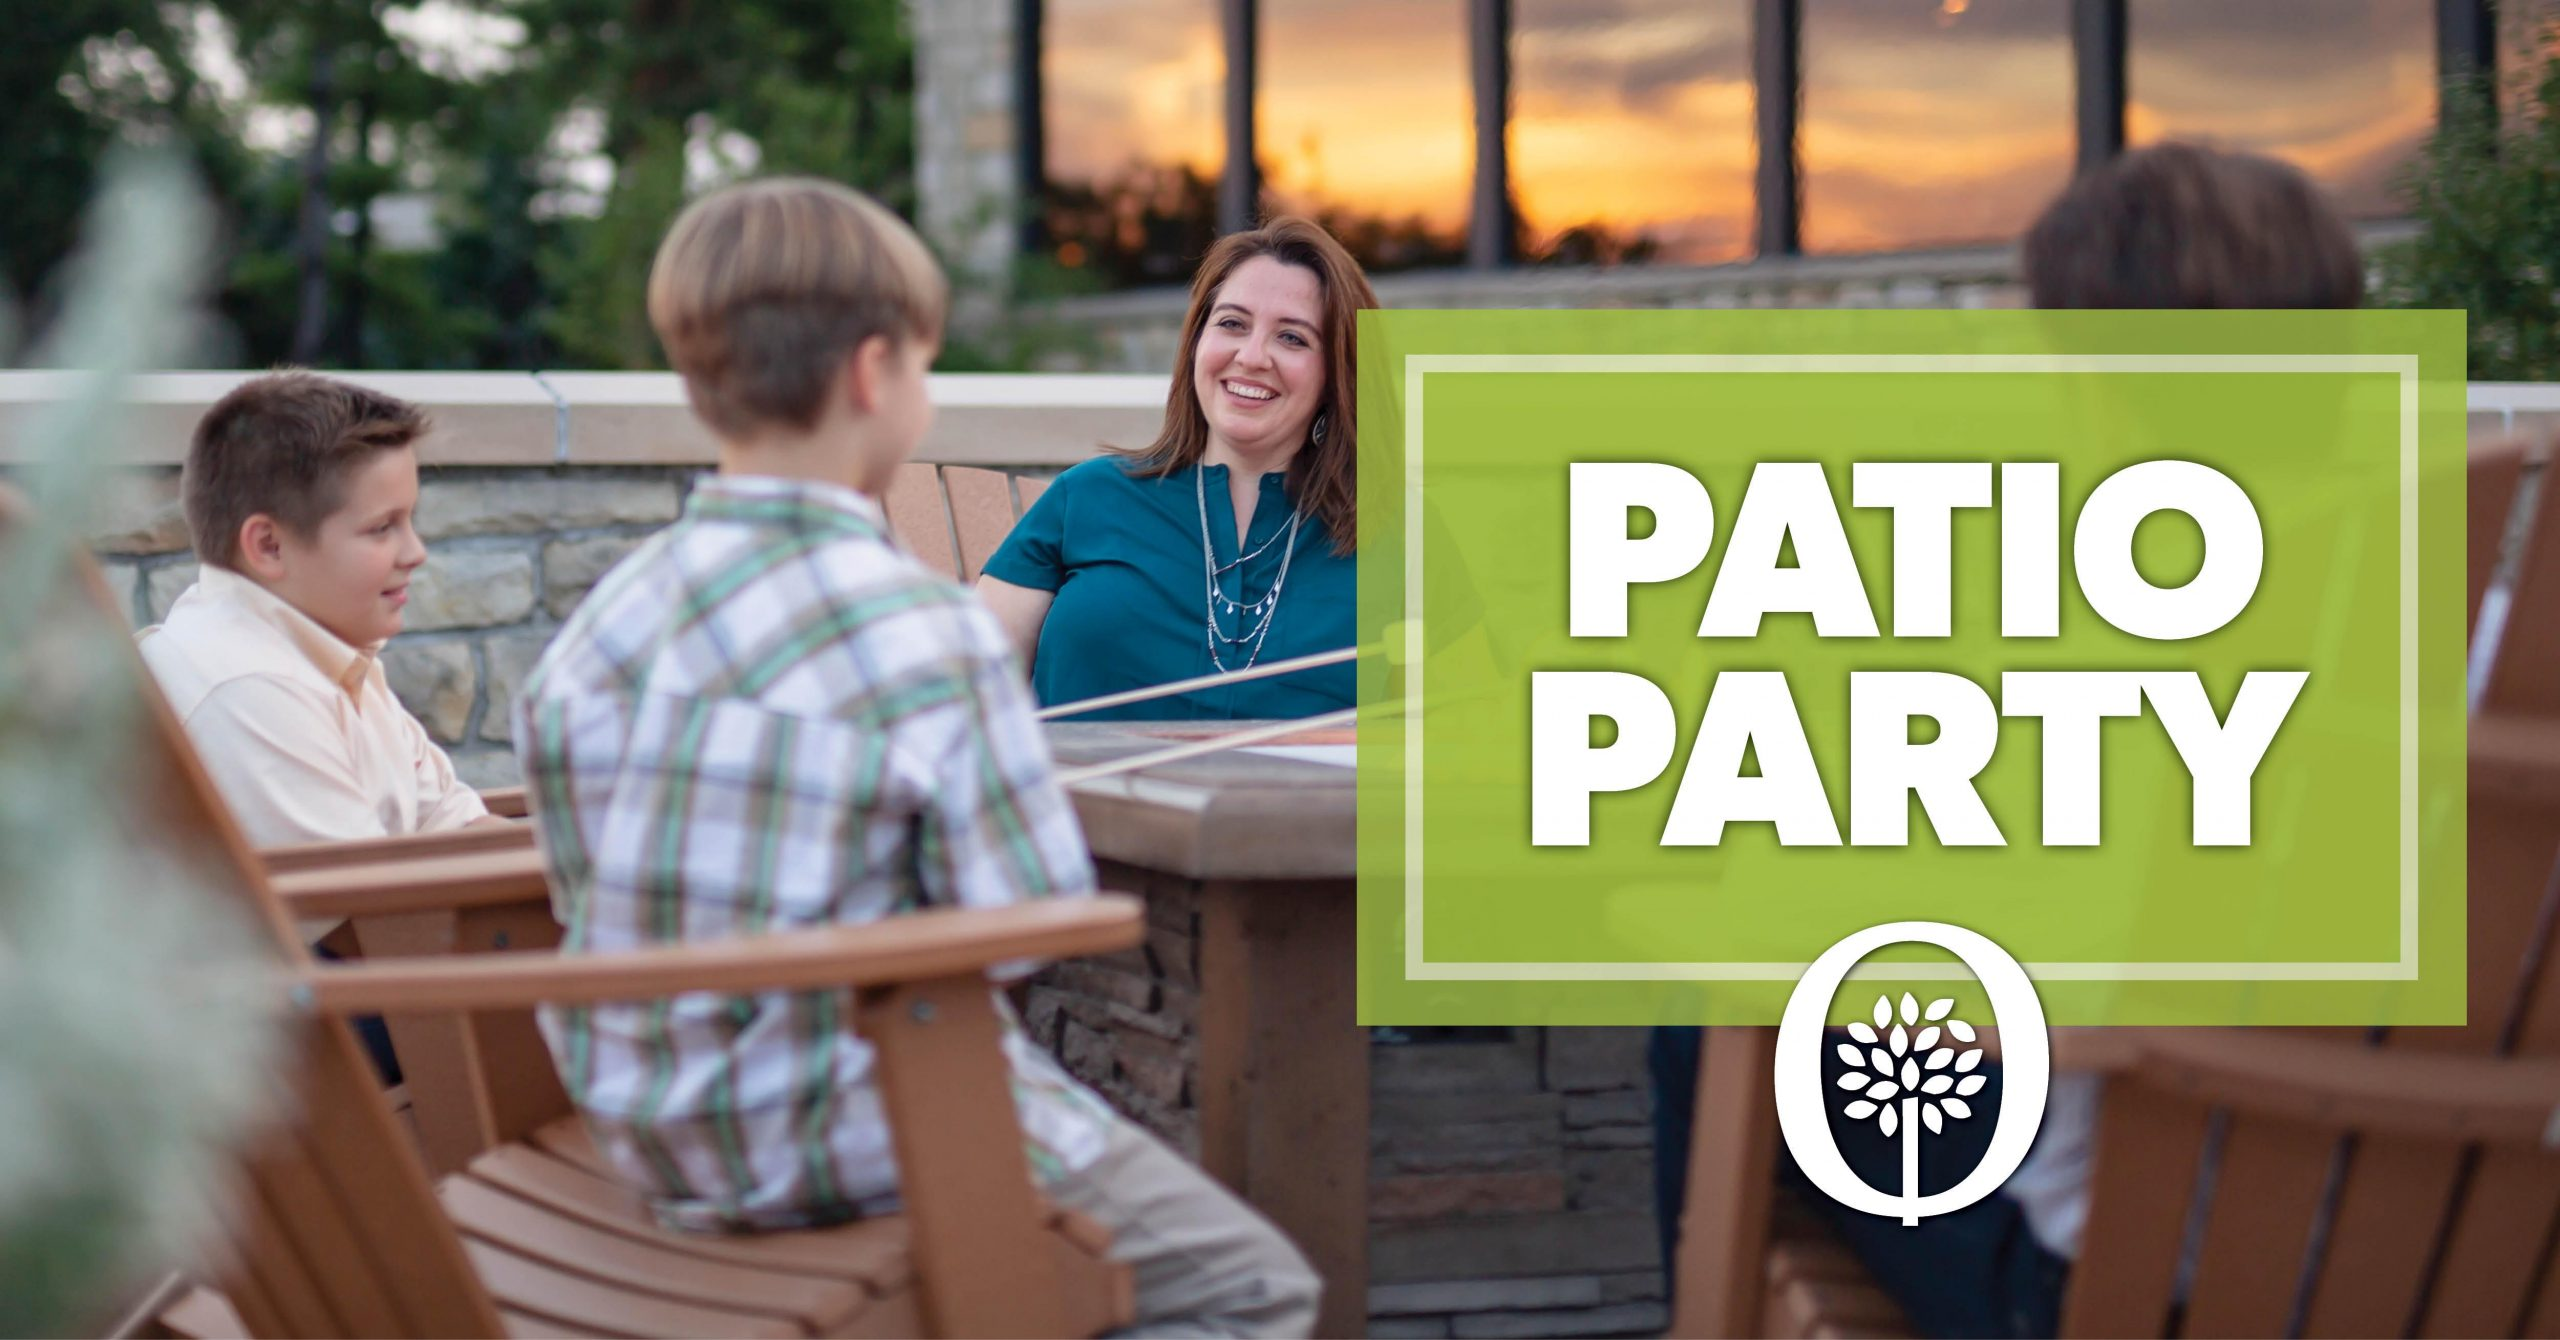 Patio Party header photo